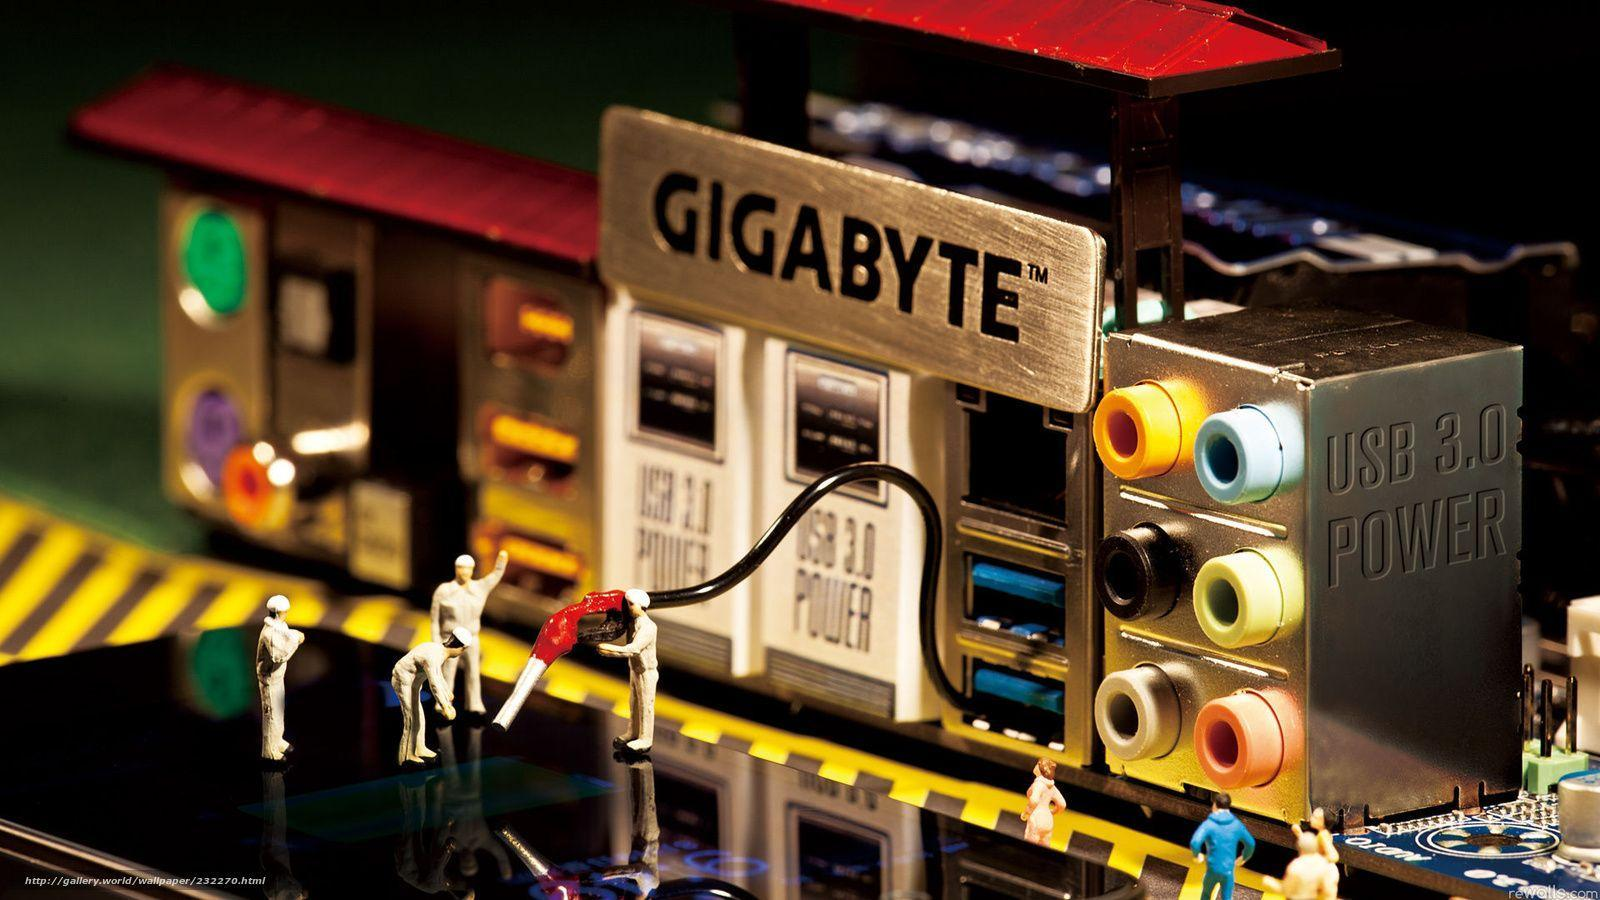 Download wallpaper gigabyte, motherboard free desktop wallpaper in ...